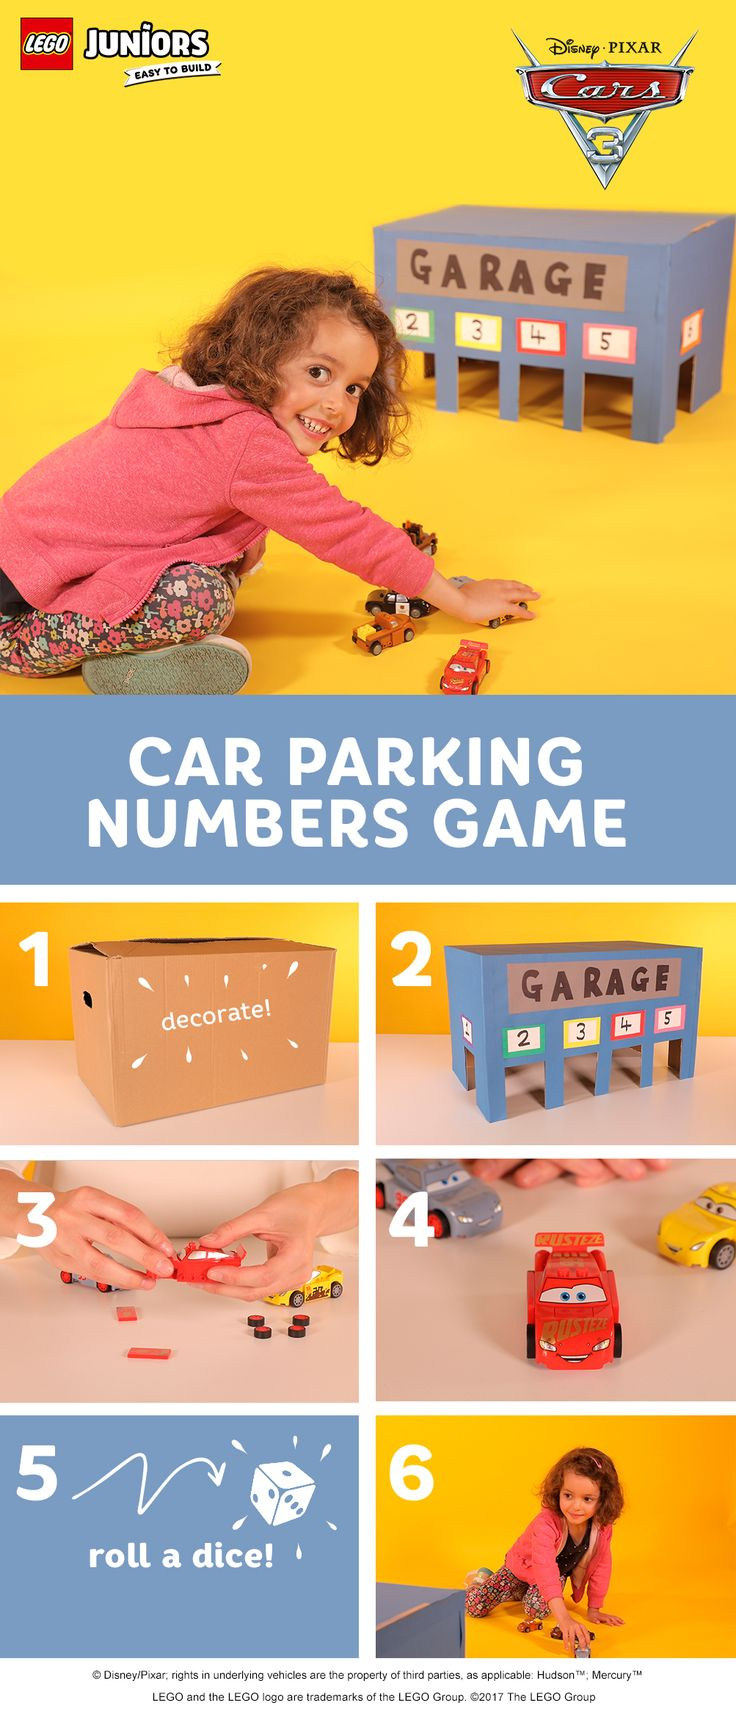 This is a super simple and fun way to help kids with number recognition - using LEGO cars and a cardboard box. Cut out garage doors from an old cardboard box, help your child decorate it with whatever craft supplies you have, then write the numbers one to six on the doors. Encourage your child to roll a dice and aim the car for that number garage door. Keep score using LEGO bricks for the points, or ask your child to tally up the points with a crayon on a piece of paper.